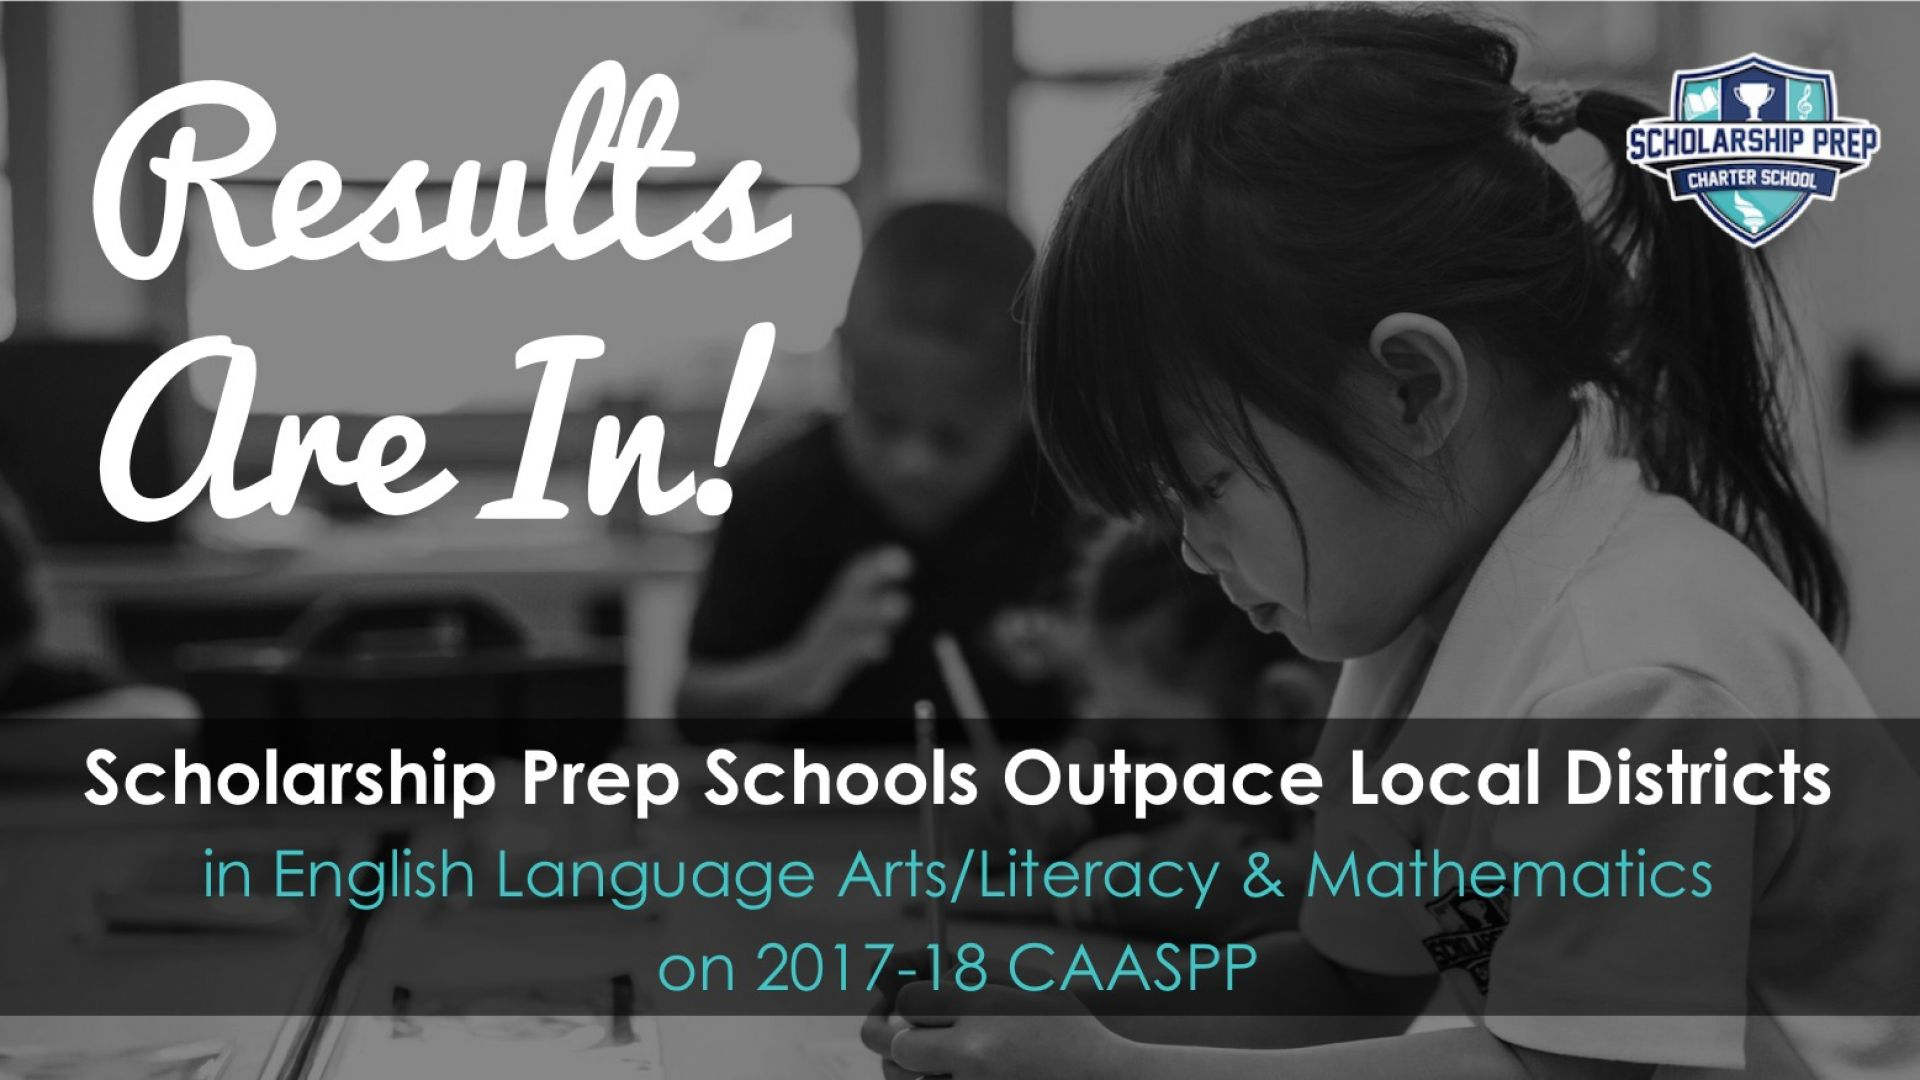 Scholarship Prep Outpaces Local School Districts in CAASPP Results!